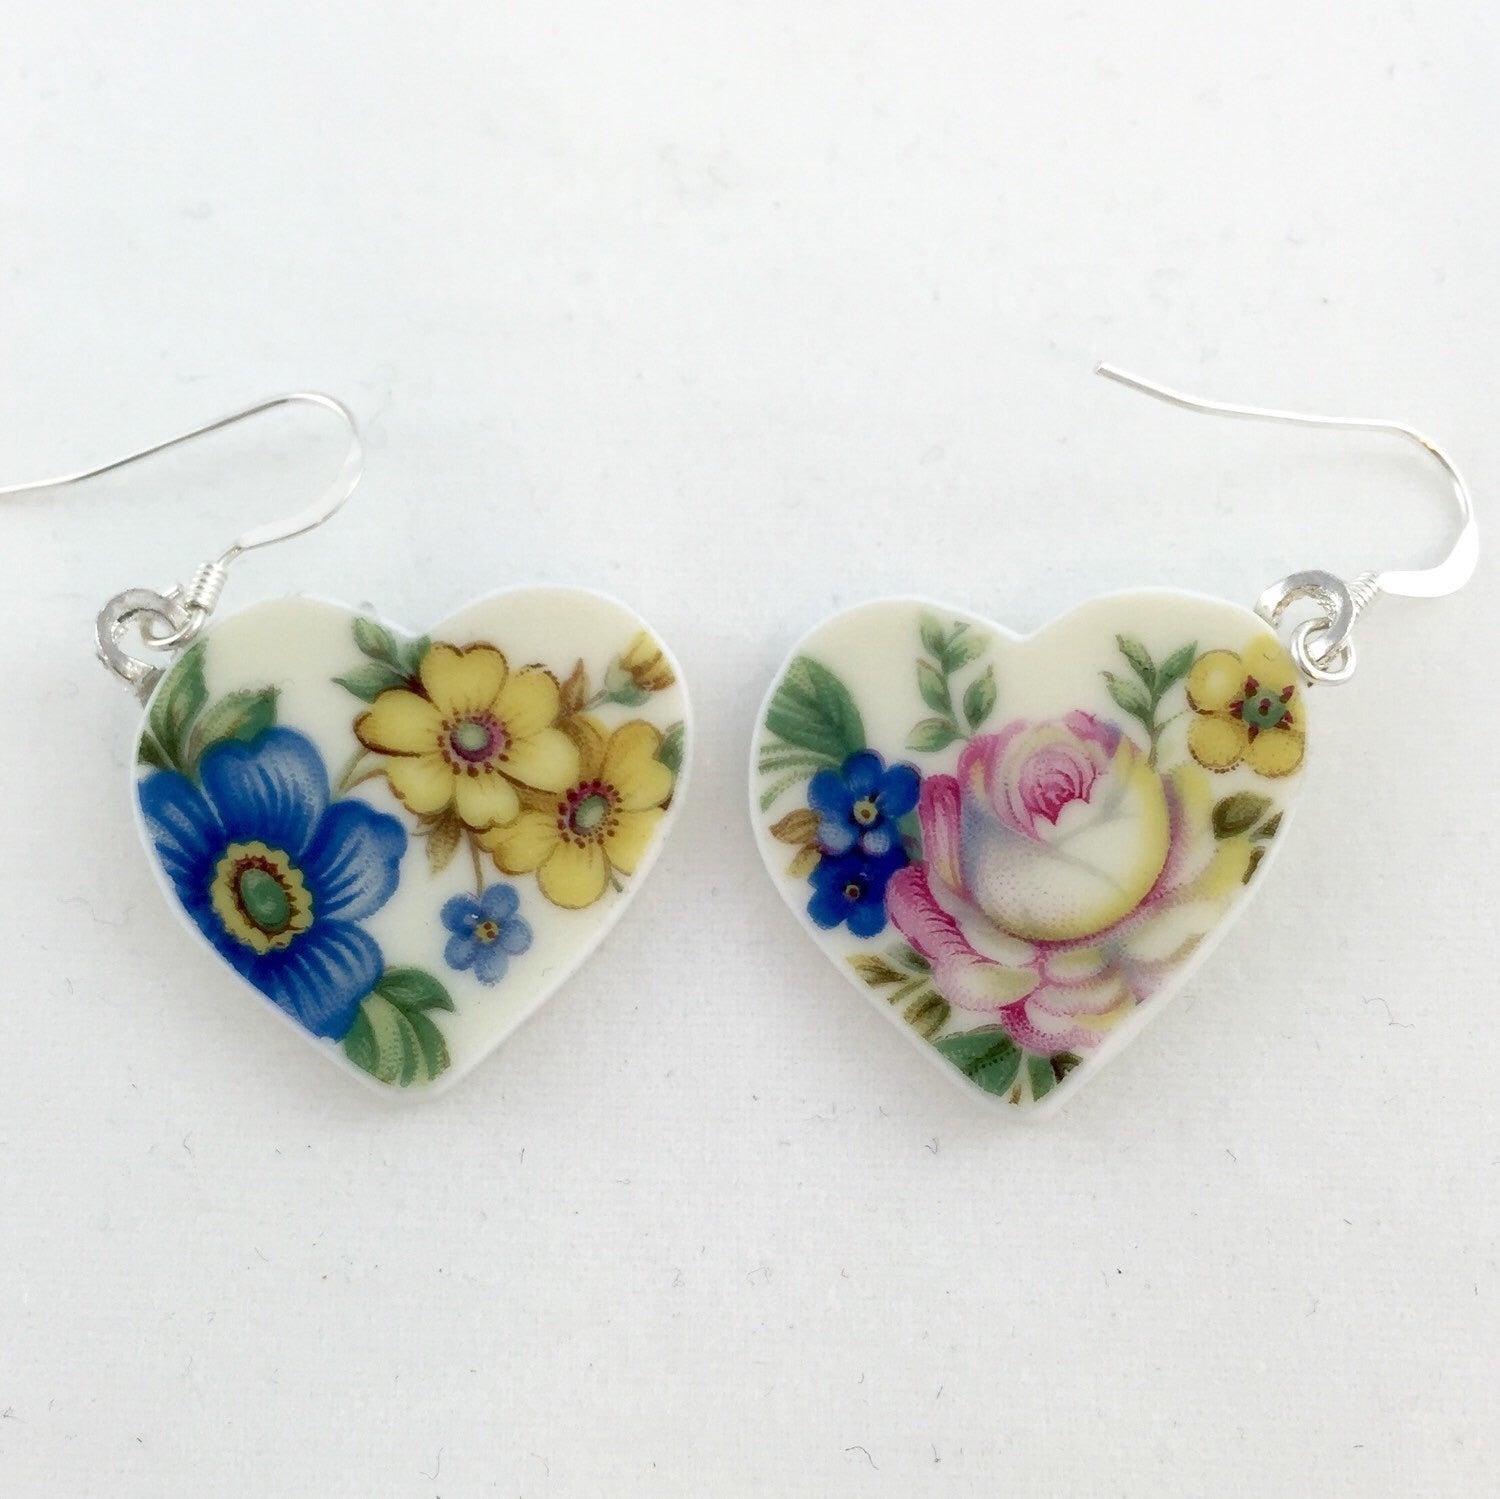 Floral heart earrings - unique gift ideas